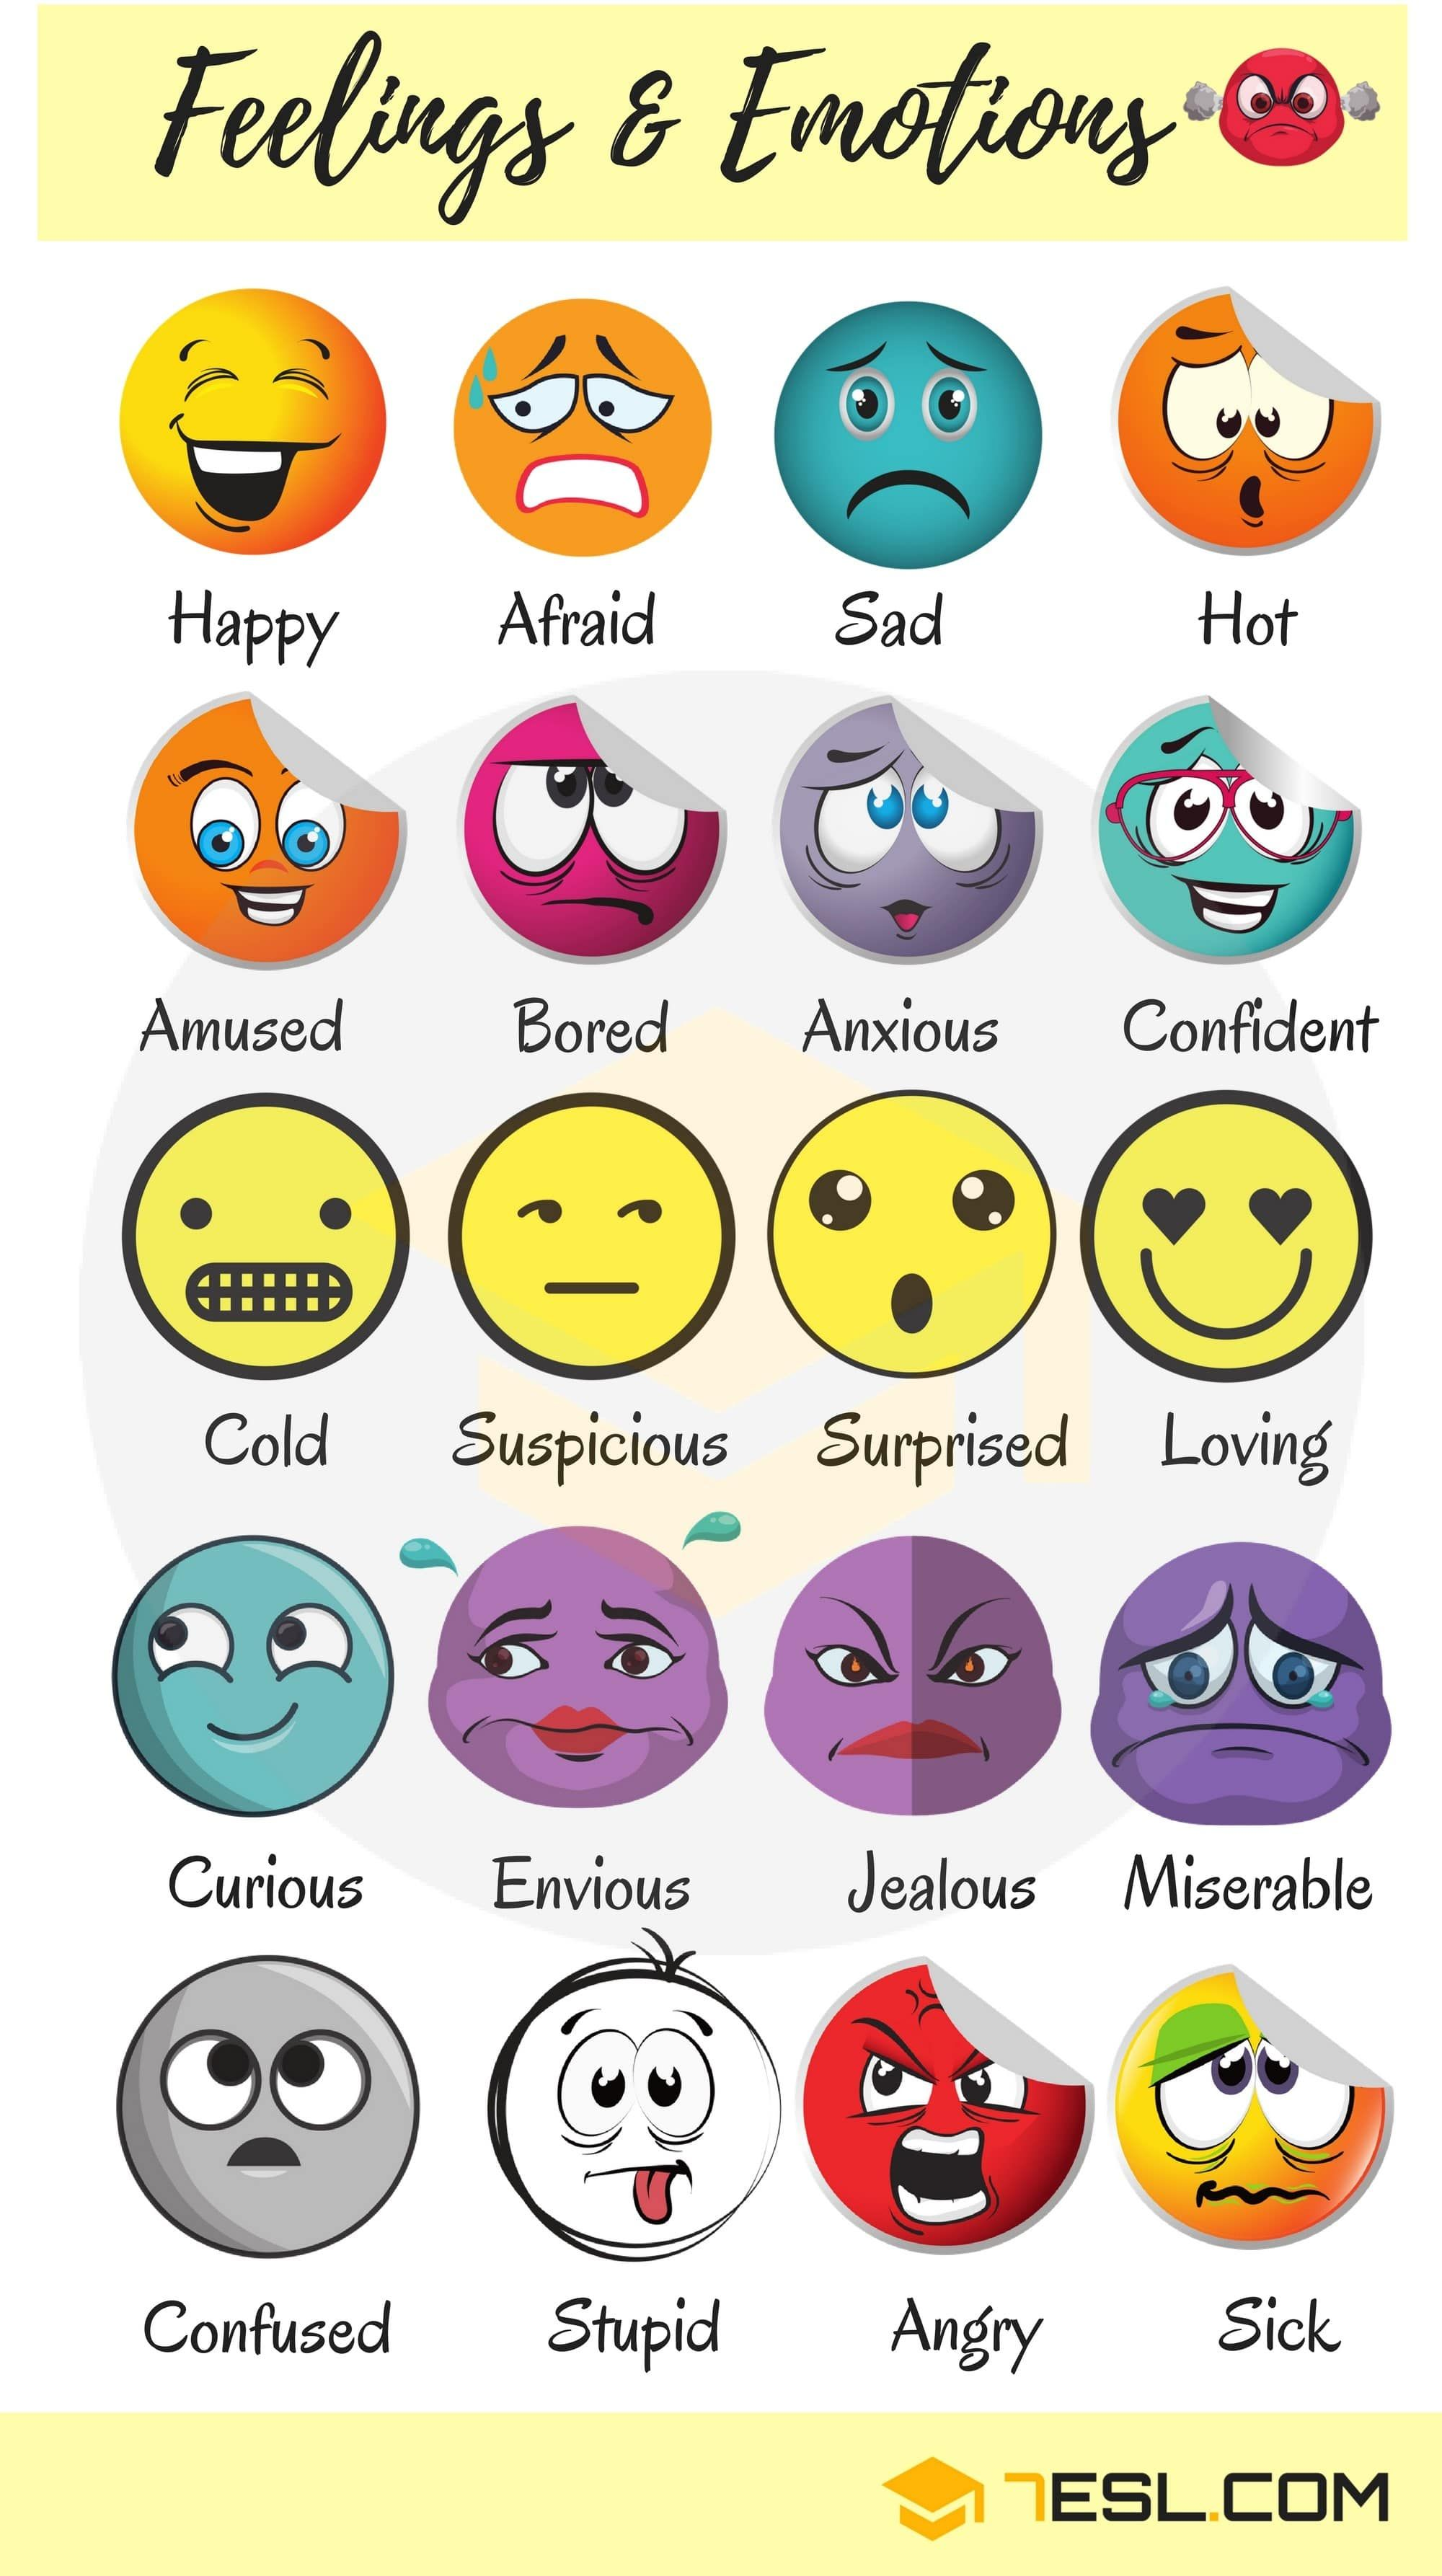 How To Describe Someone S Feelings And Emotions